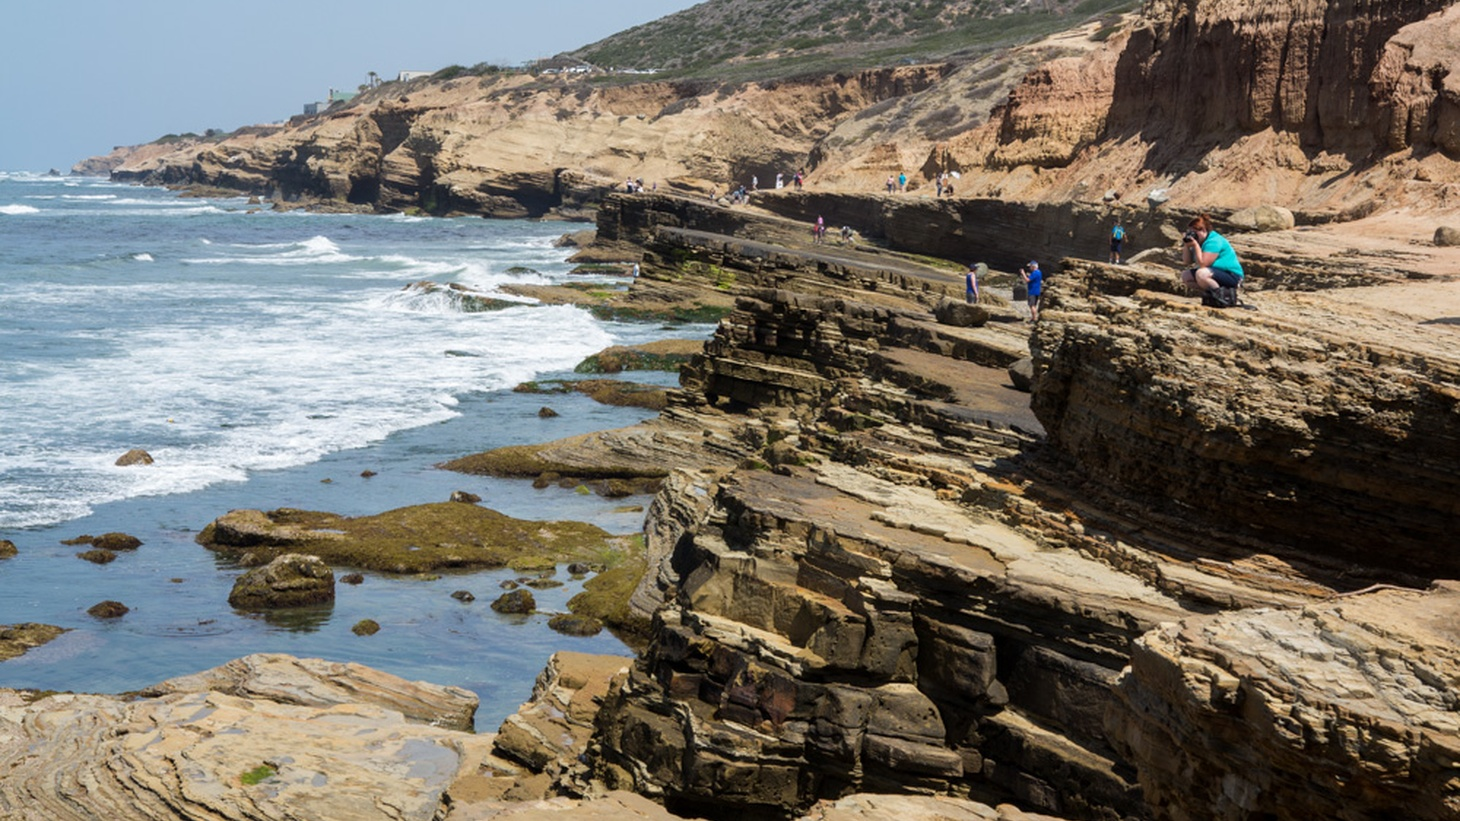 Tide pools at Point Loma, San Diego.